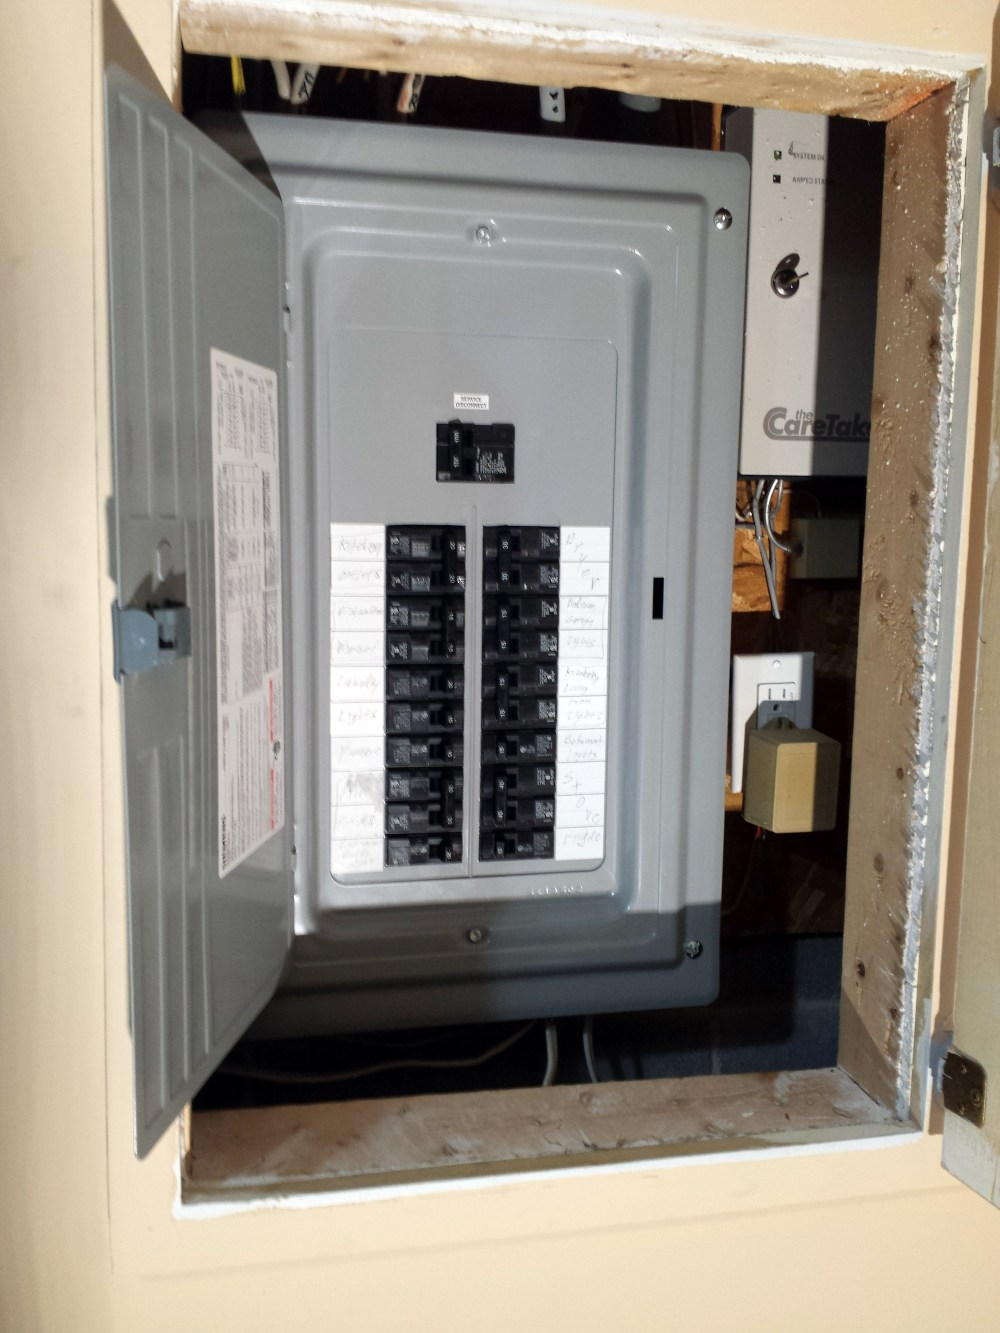 medium resolution of replace fuse box replace fpe breakers total electric 100 amp fuse box car 100 amp fuse box